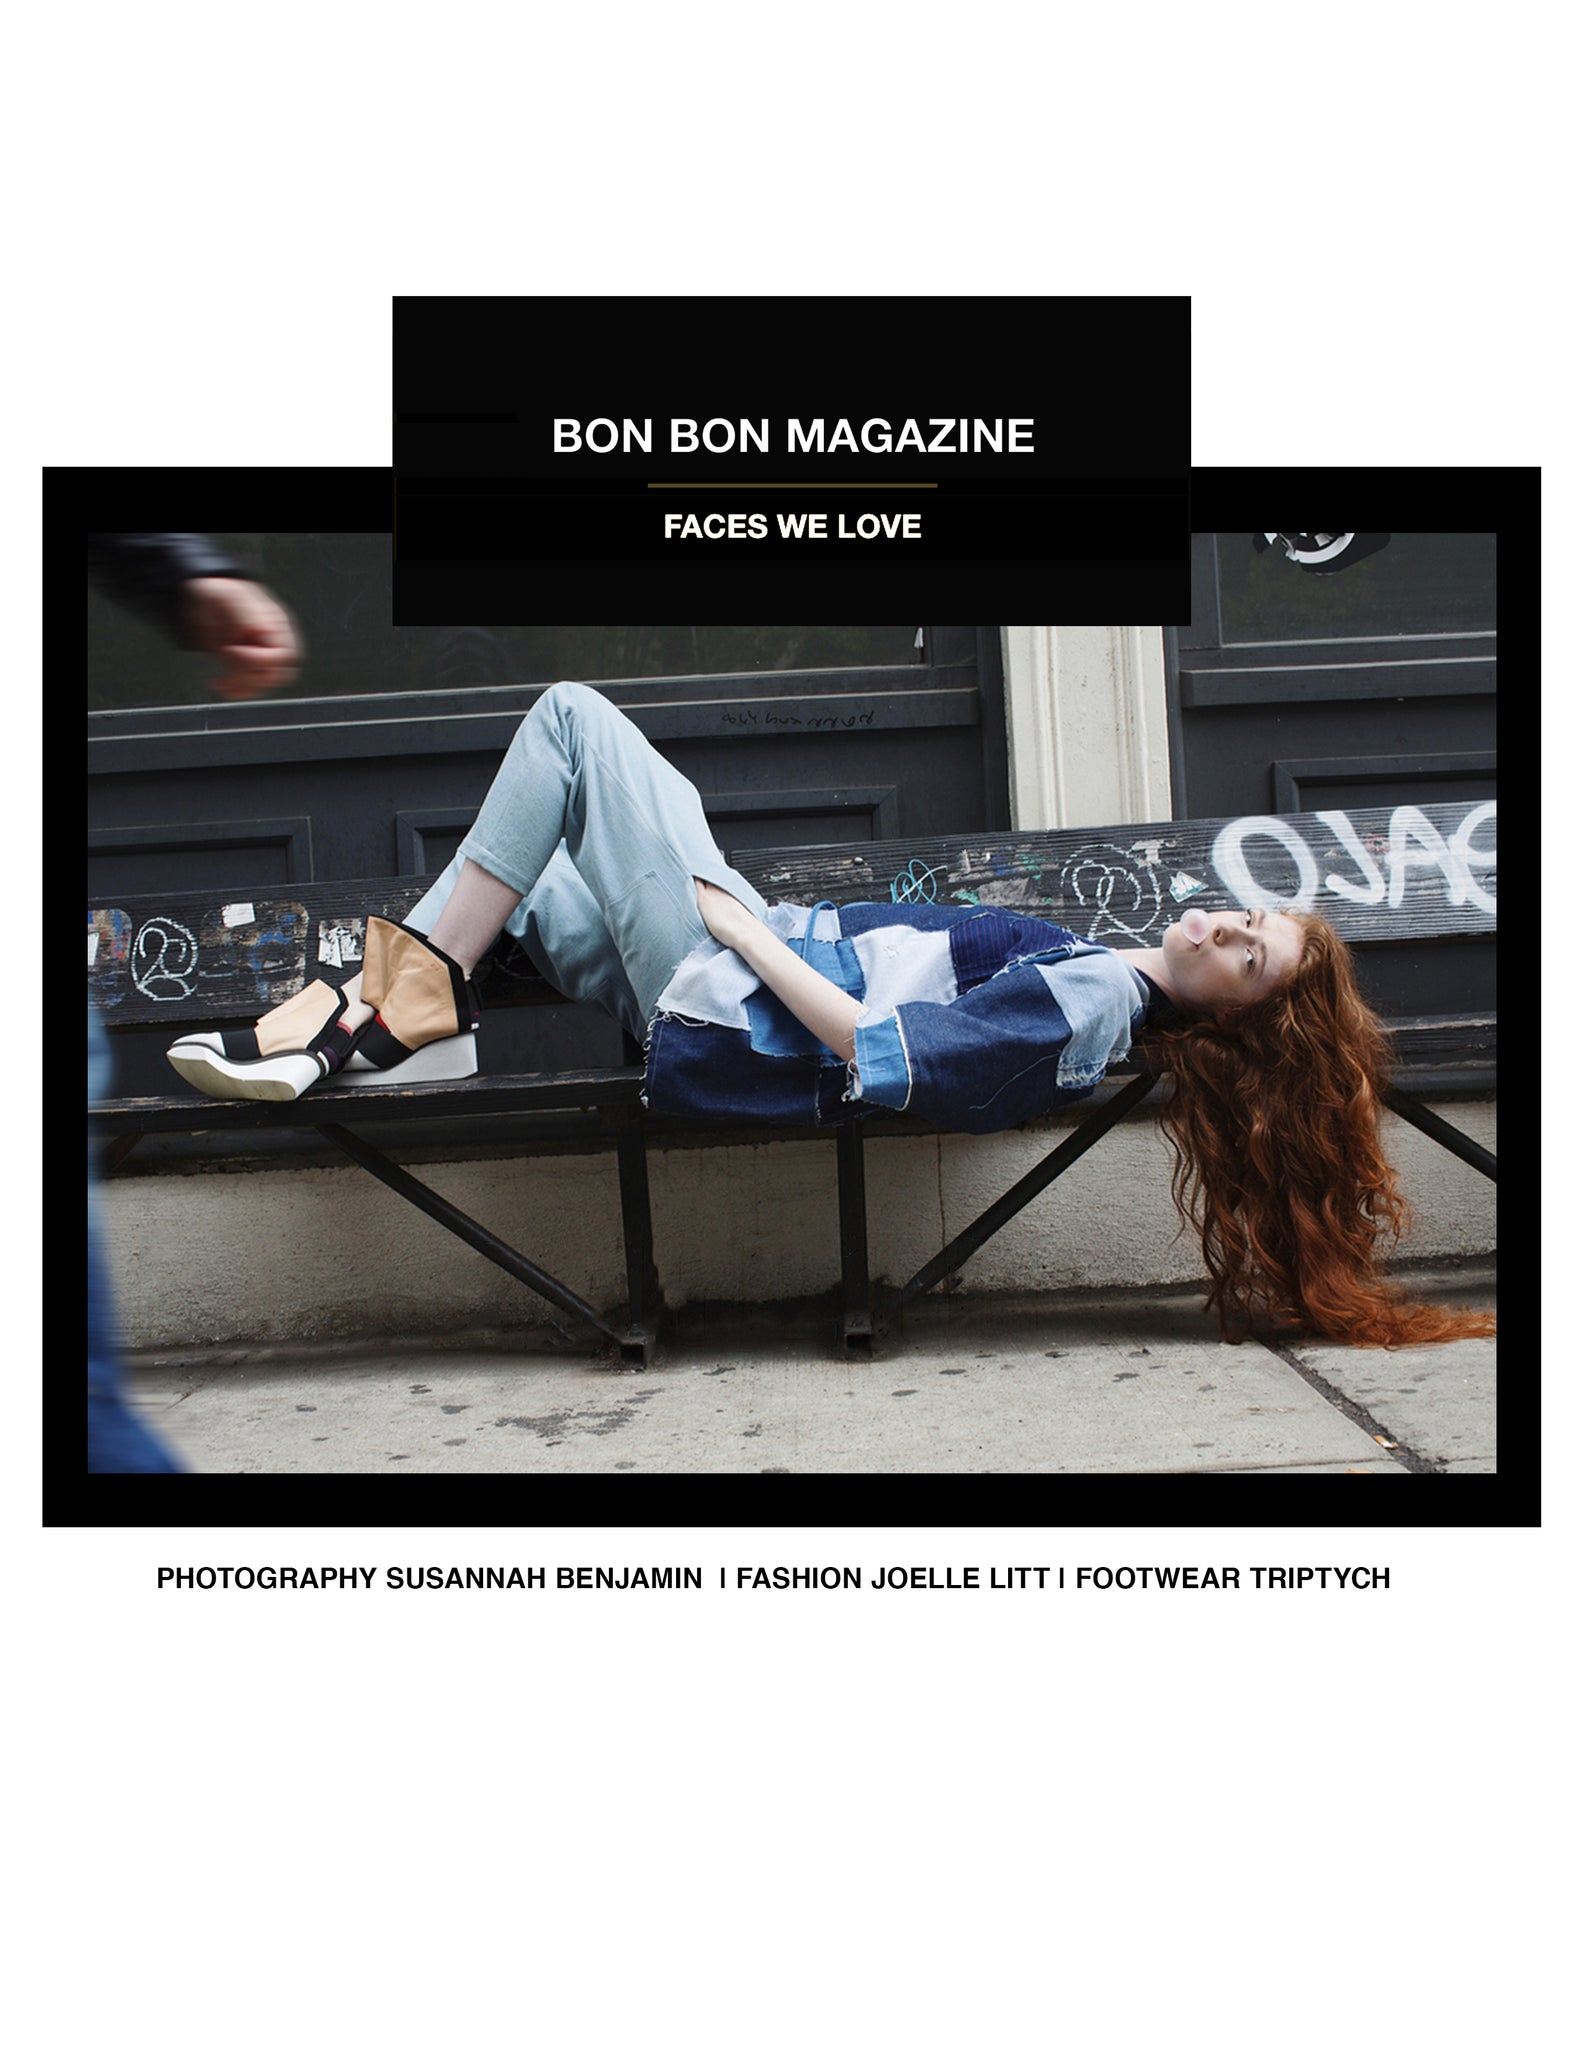 TRIPTYCH IN BON BON MAGAZINE EDITORIAL FACES WE LOVE